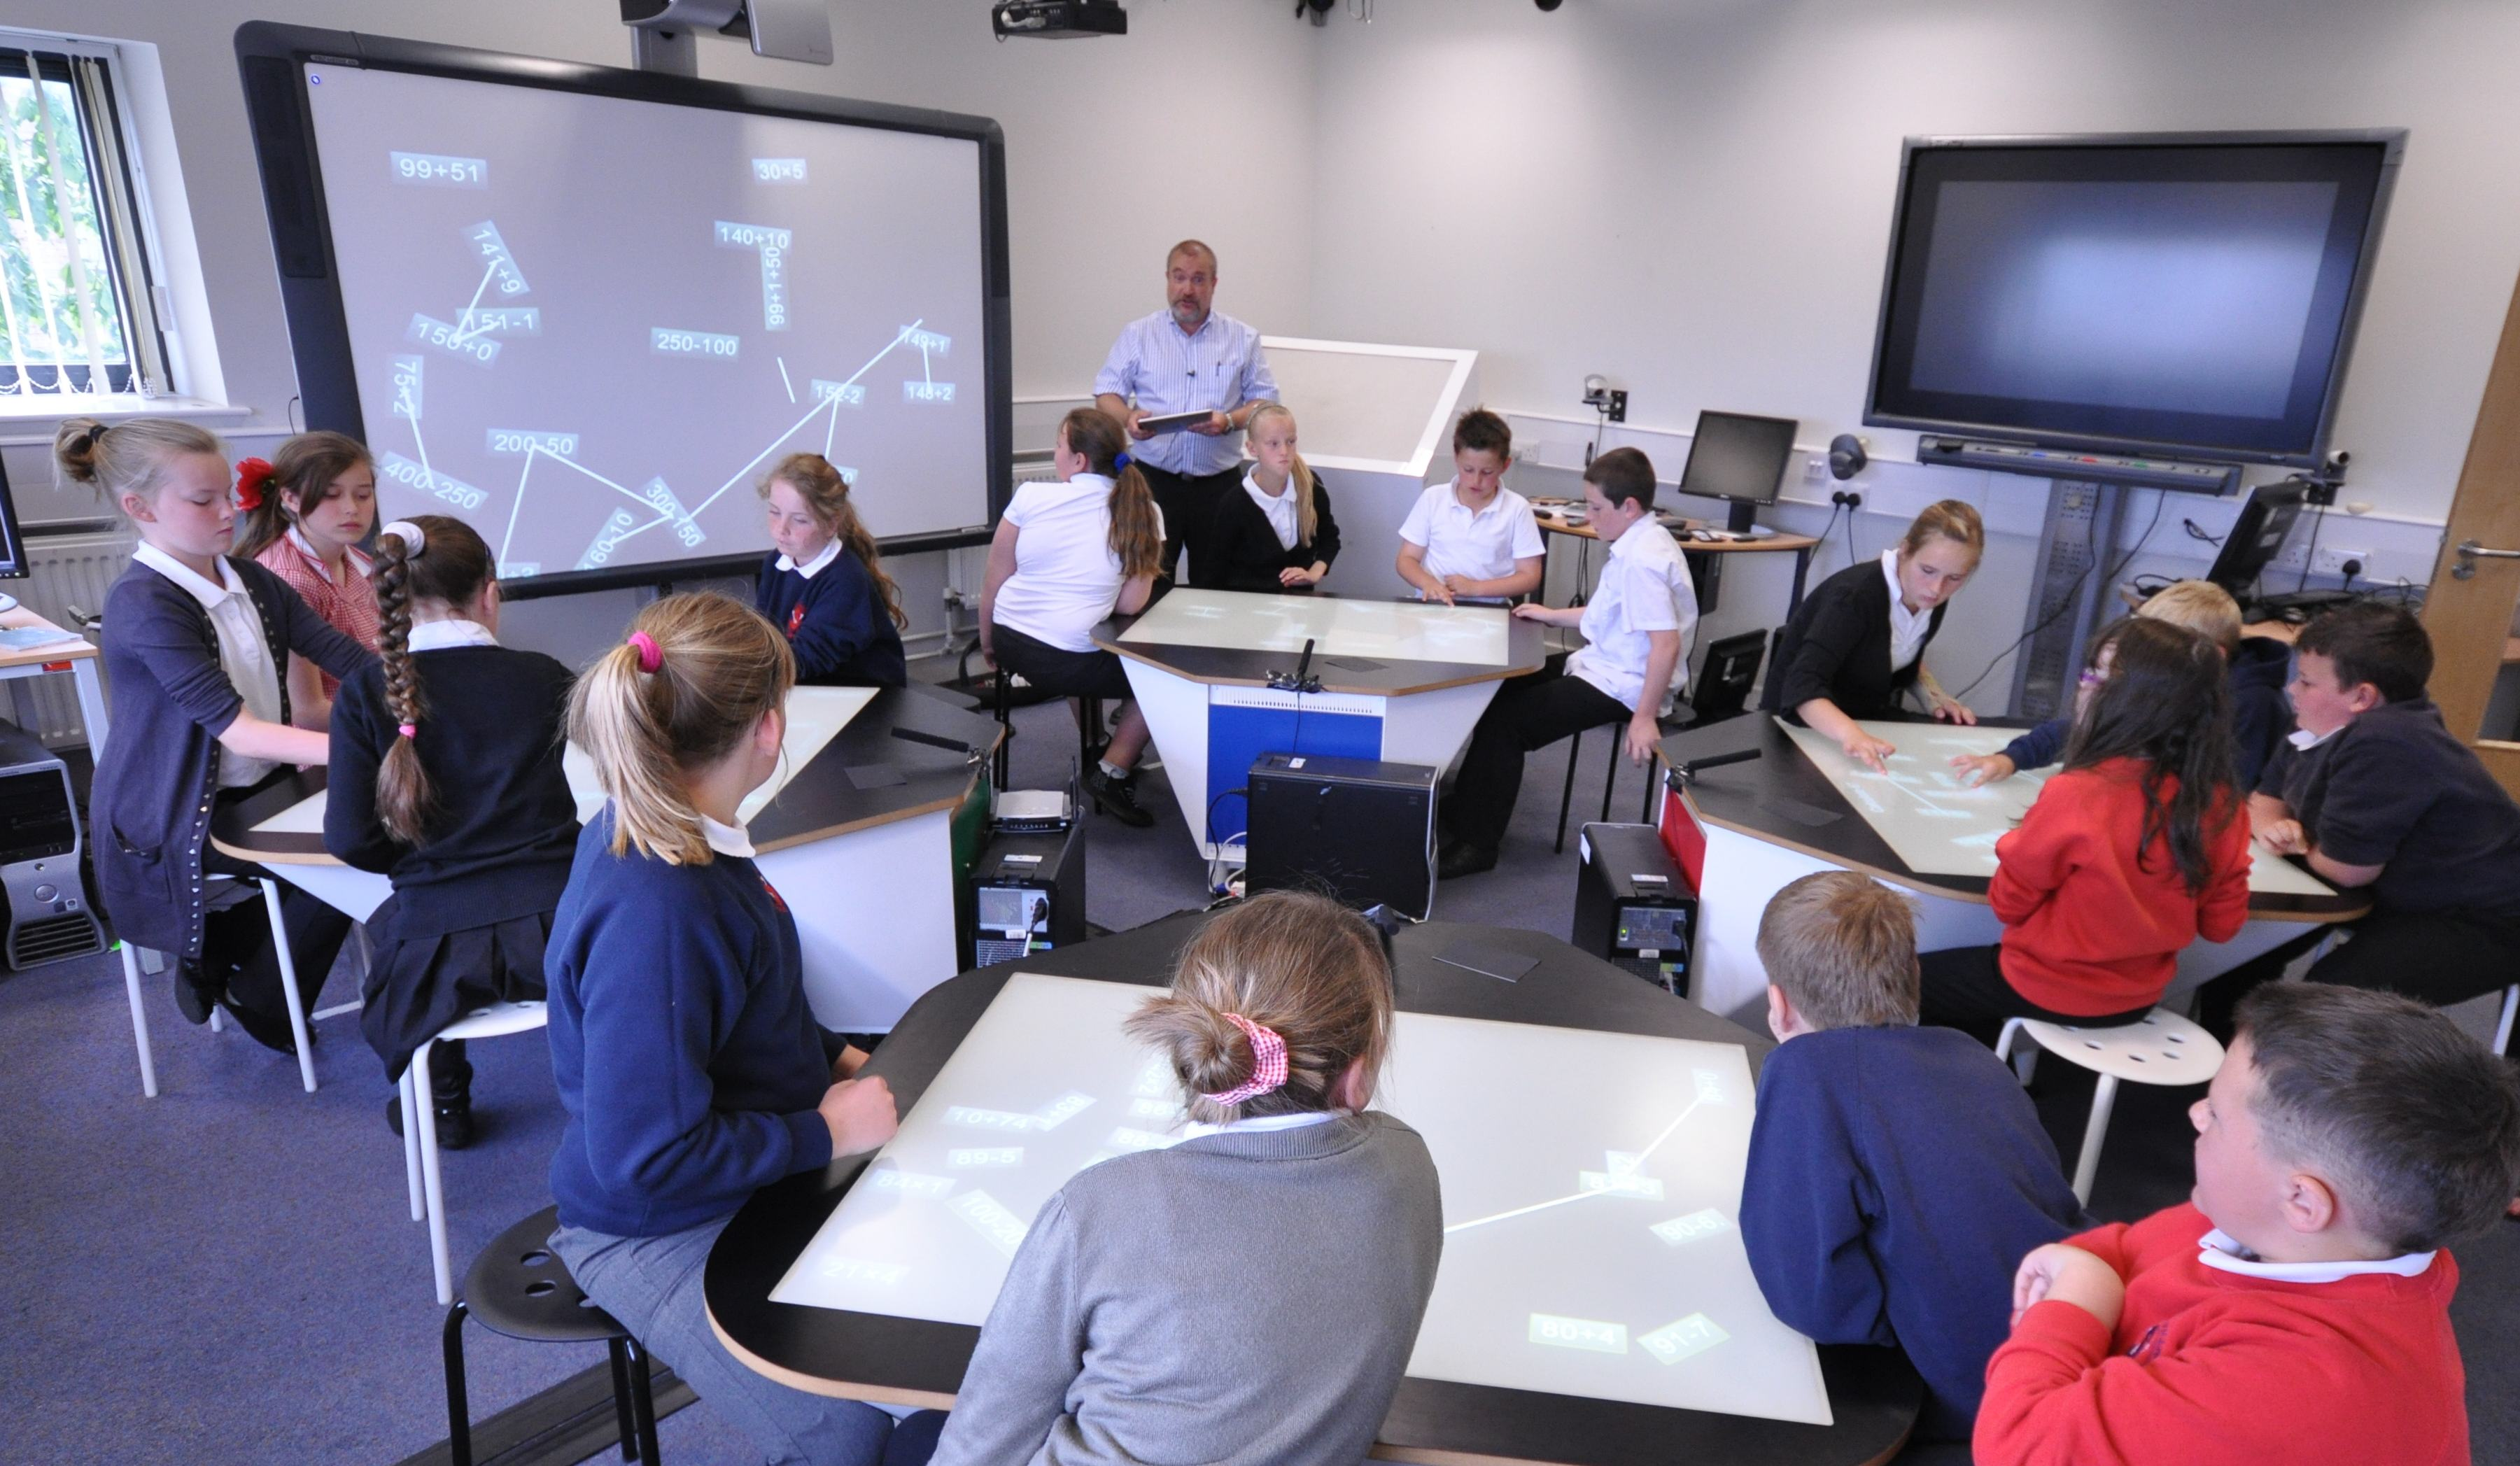 classroom future classrooms technology tech education multi touch desk learning desks tables multitouch elementary room collaboration students interaction waack higher